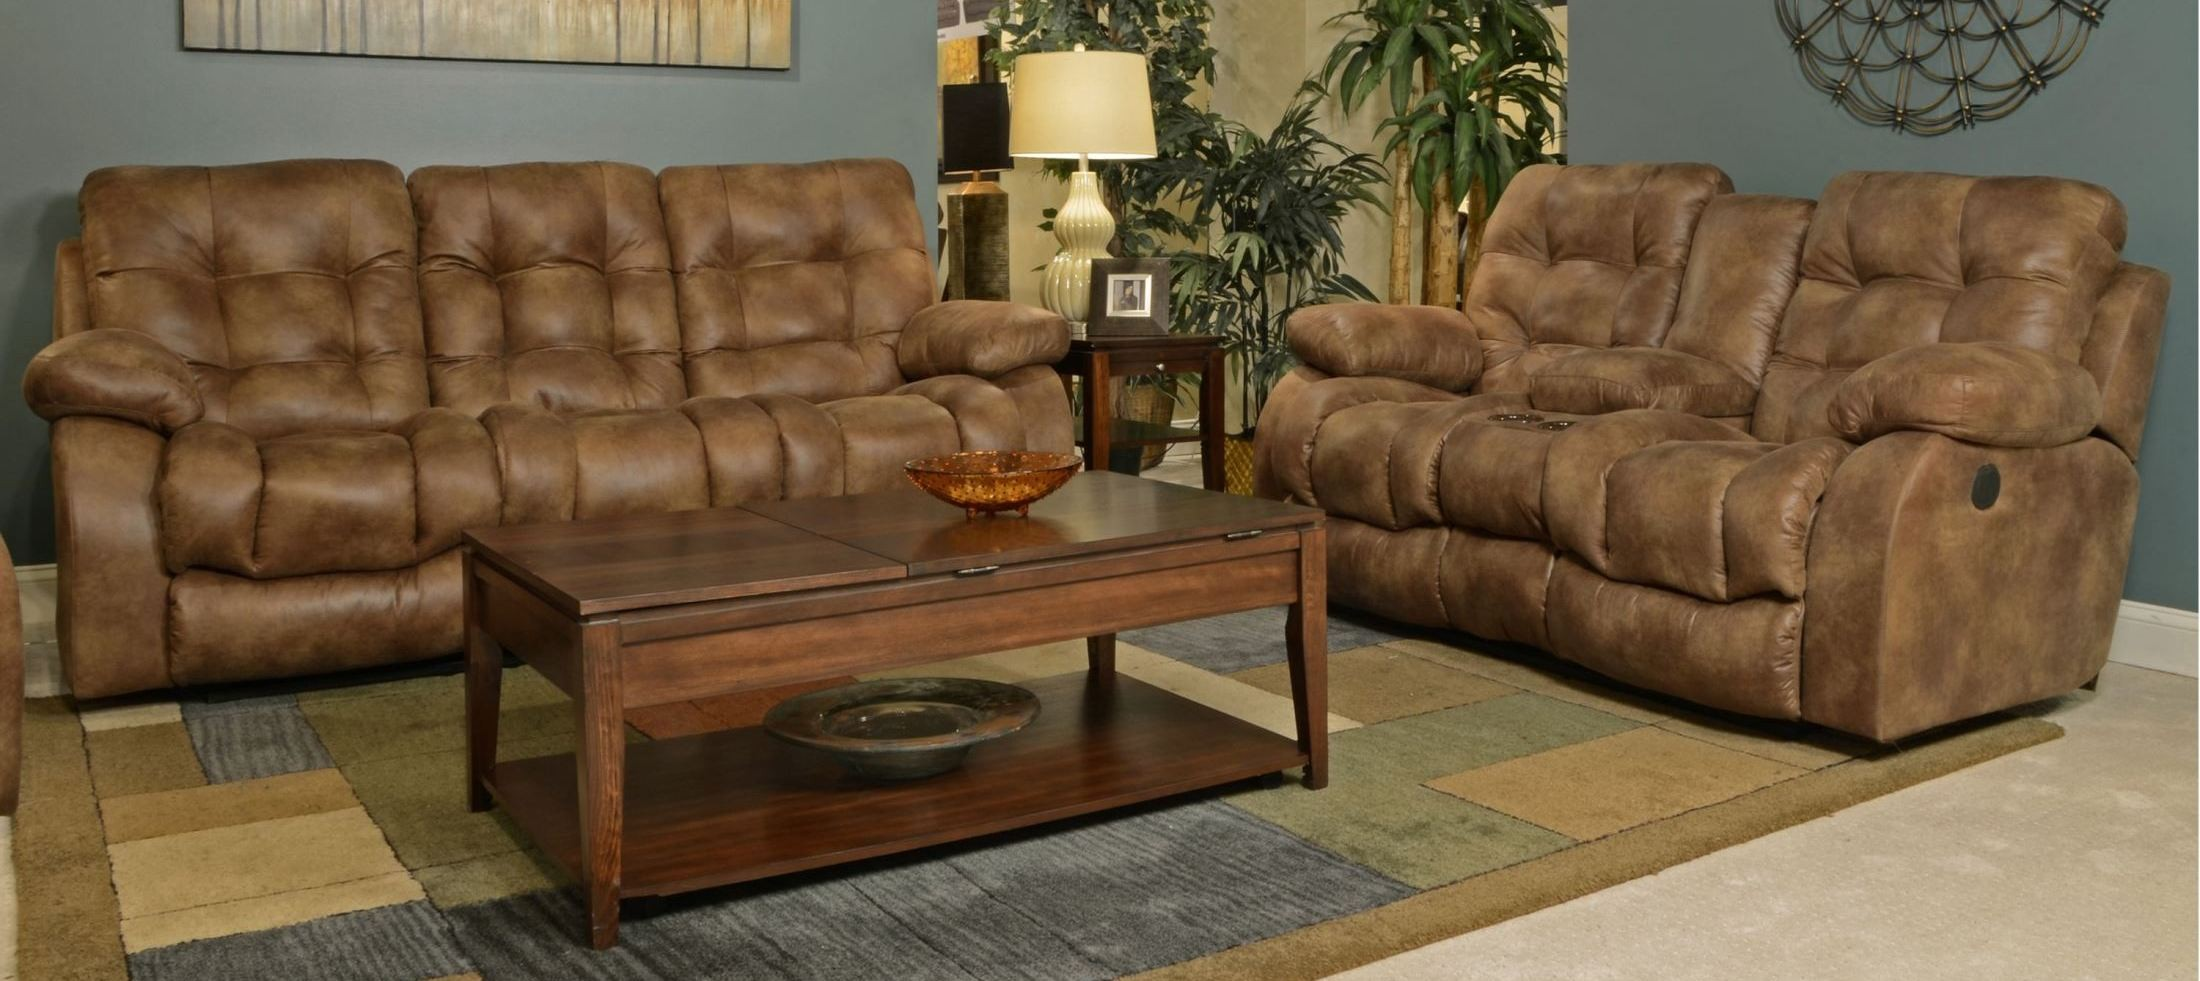 Watson Almond Power Reclining Living Room Set From Catnapper 61521205129